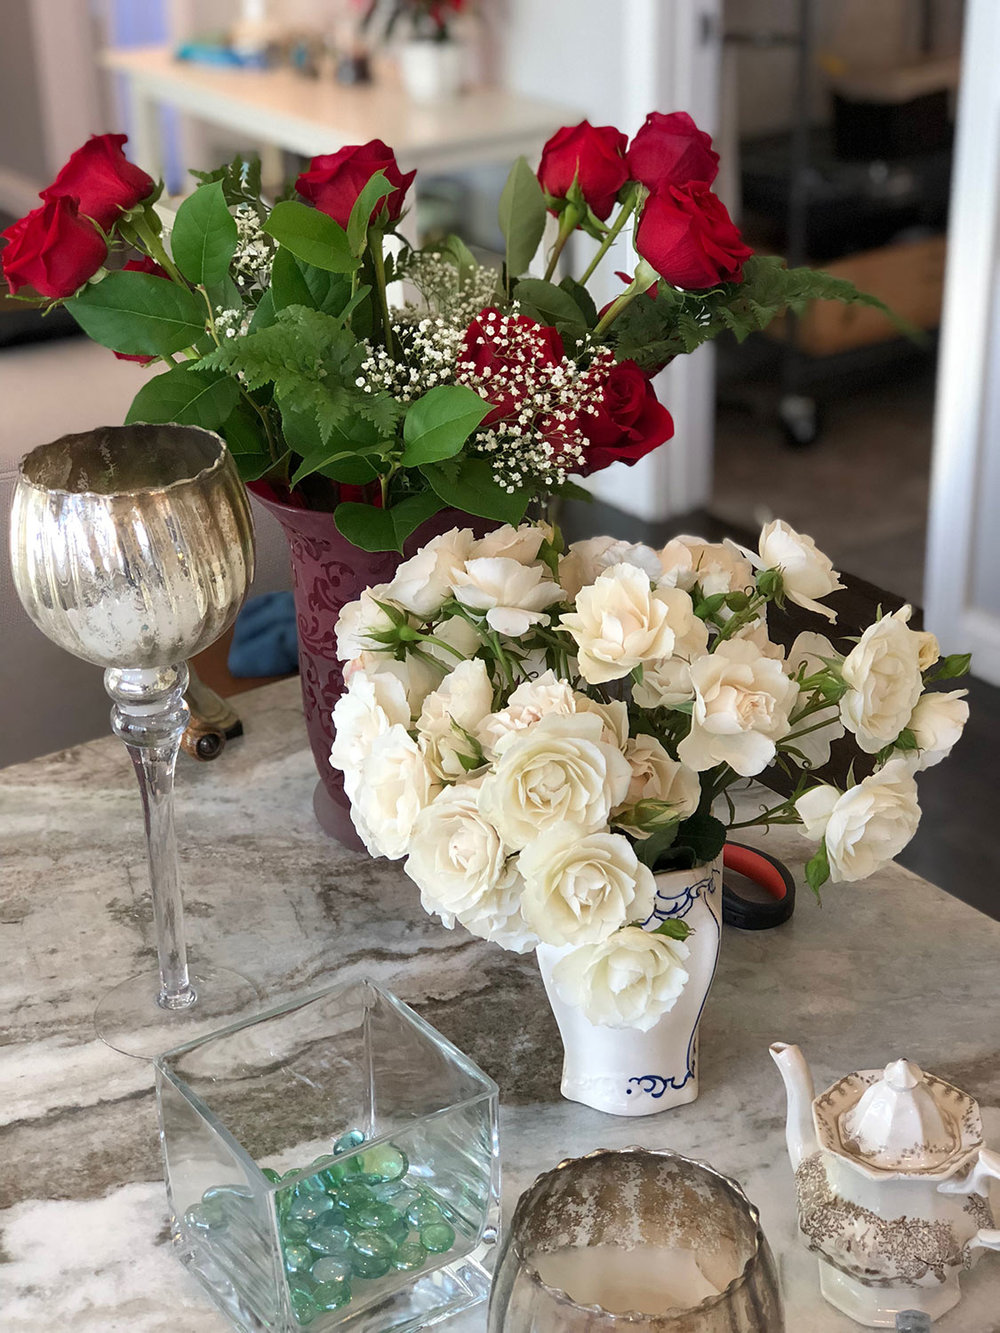 Red roses and white roses arranged in vases